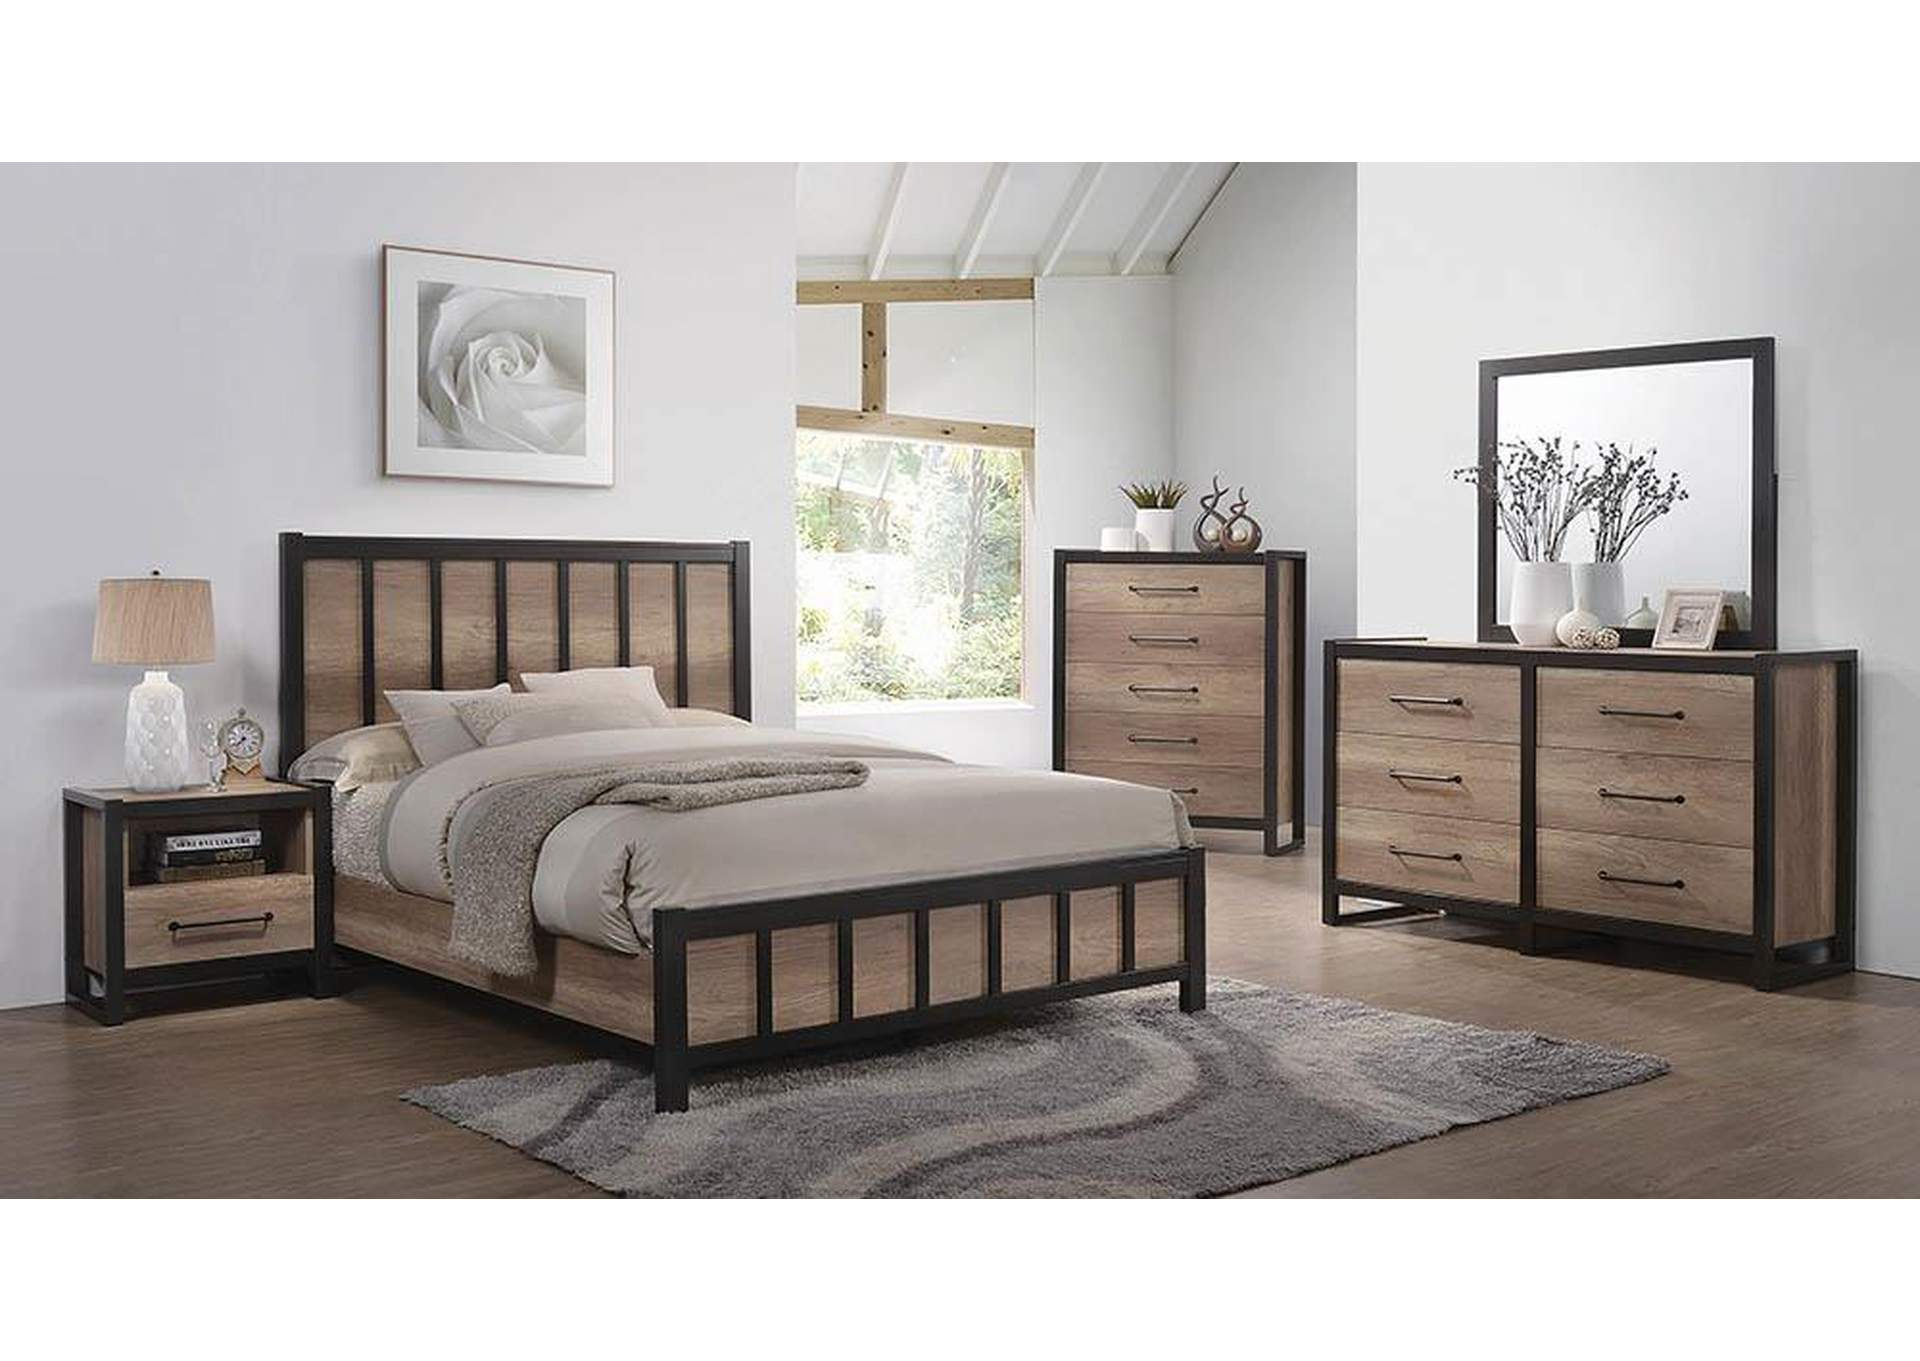 Surprising Country House Furniture Edgewater Weathered Oak Eastern King Bed Andrewgaddart Wooden Chair Designs For Living Room Andrewgaddartcom